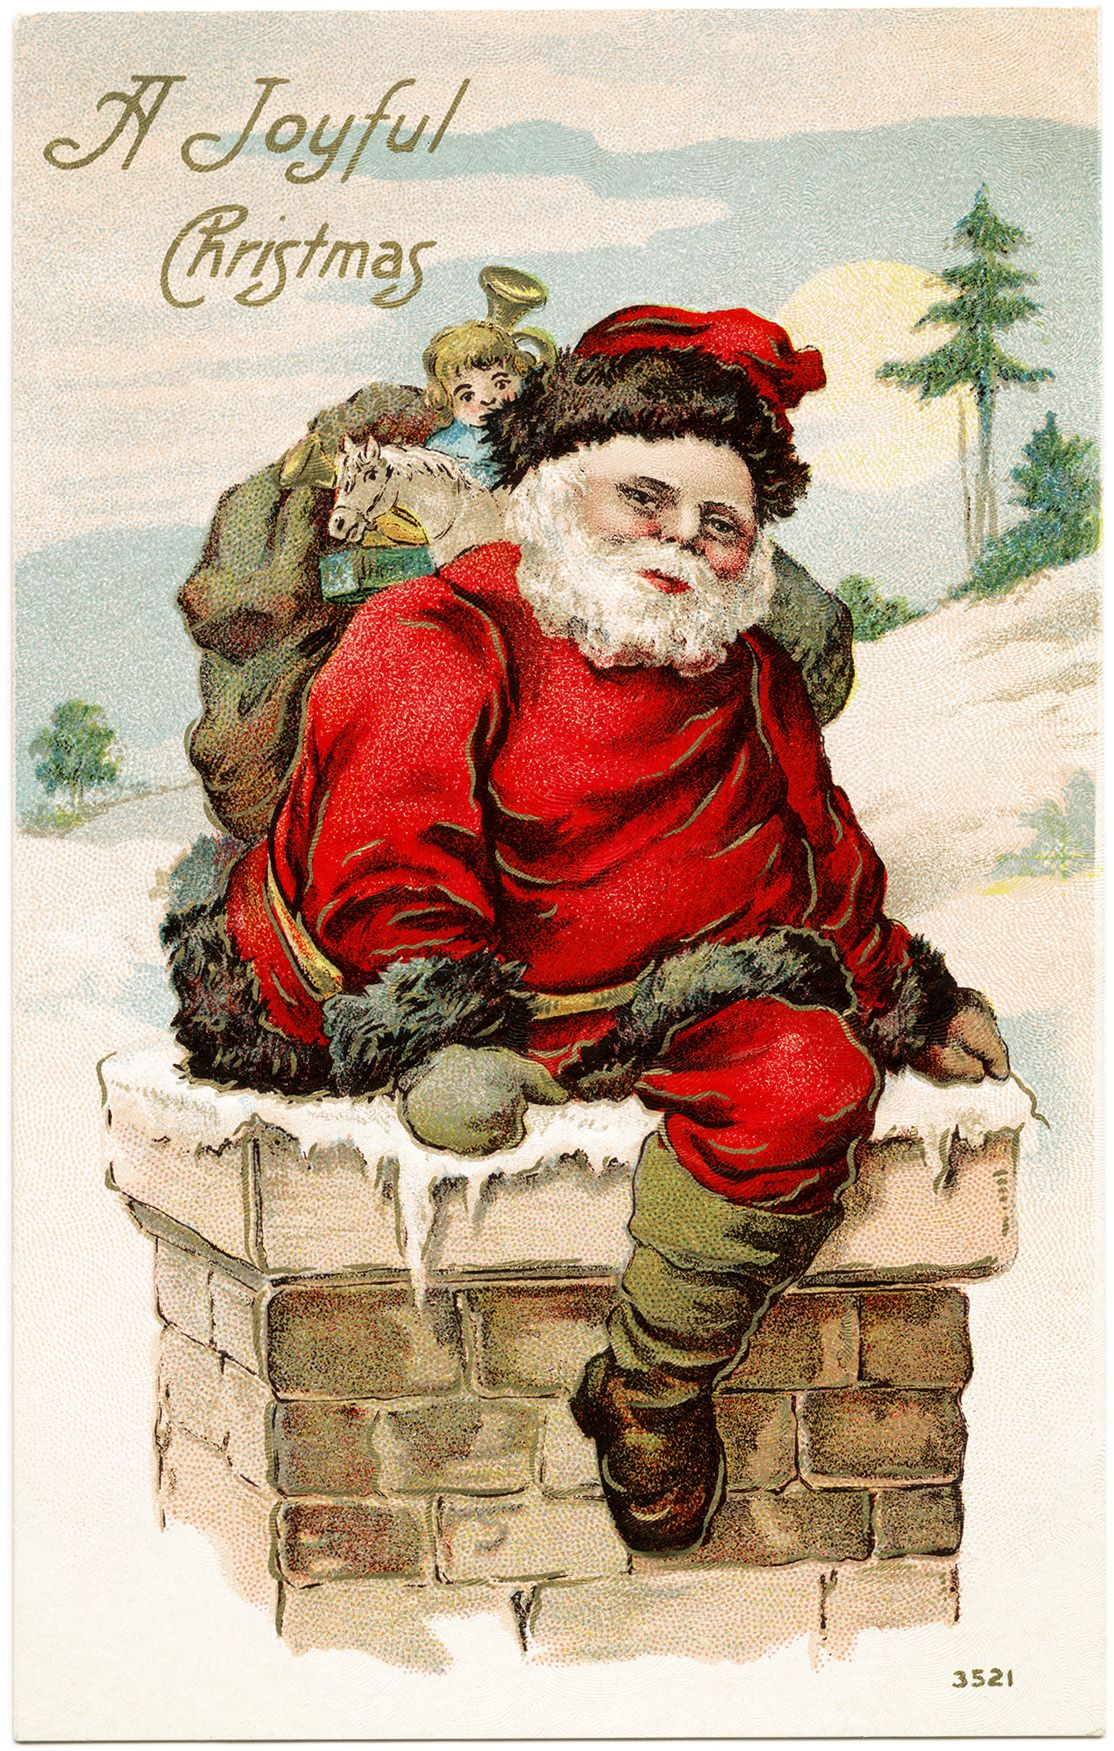 Vintage santa postcard old fashioned christmas card santa in vintage santa postcard old fashioned christmas card santa in chimney joyful christmas greeting kristyandbryce Image collections